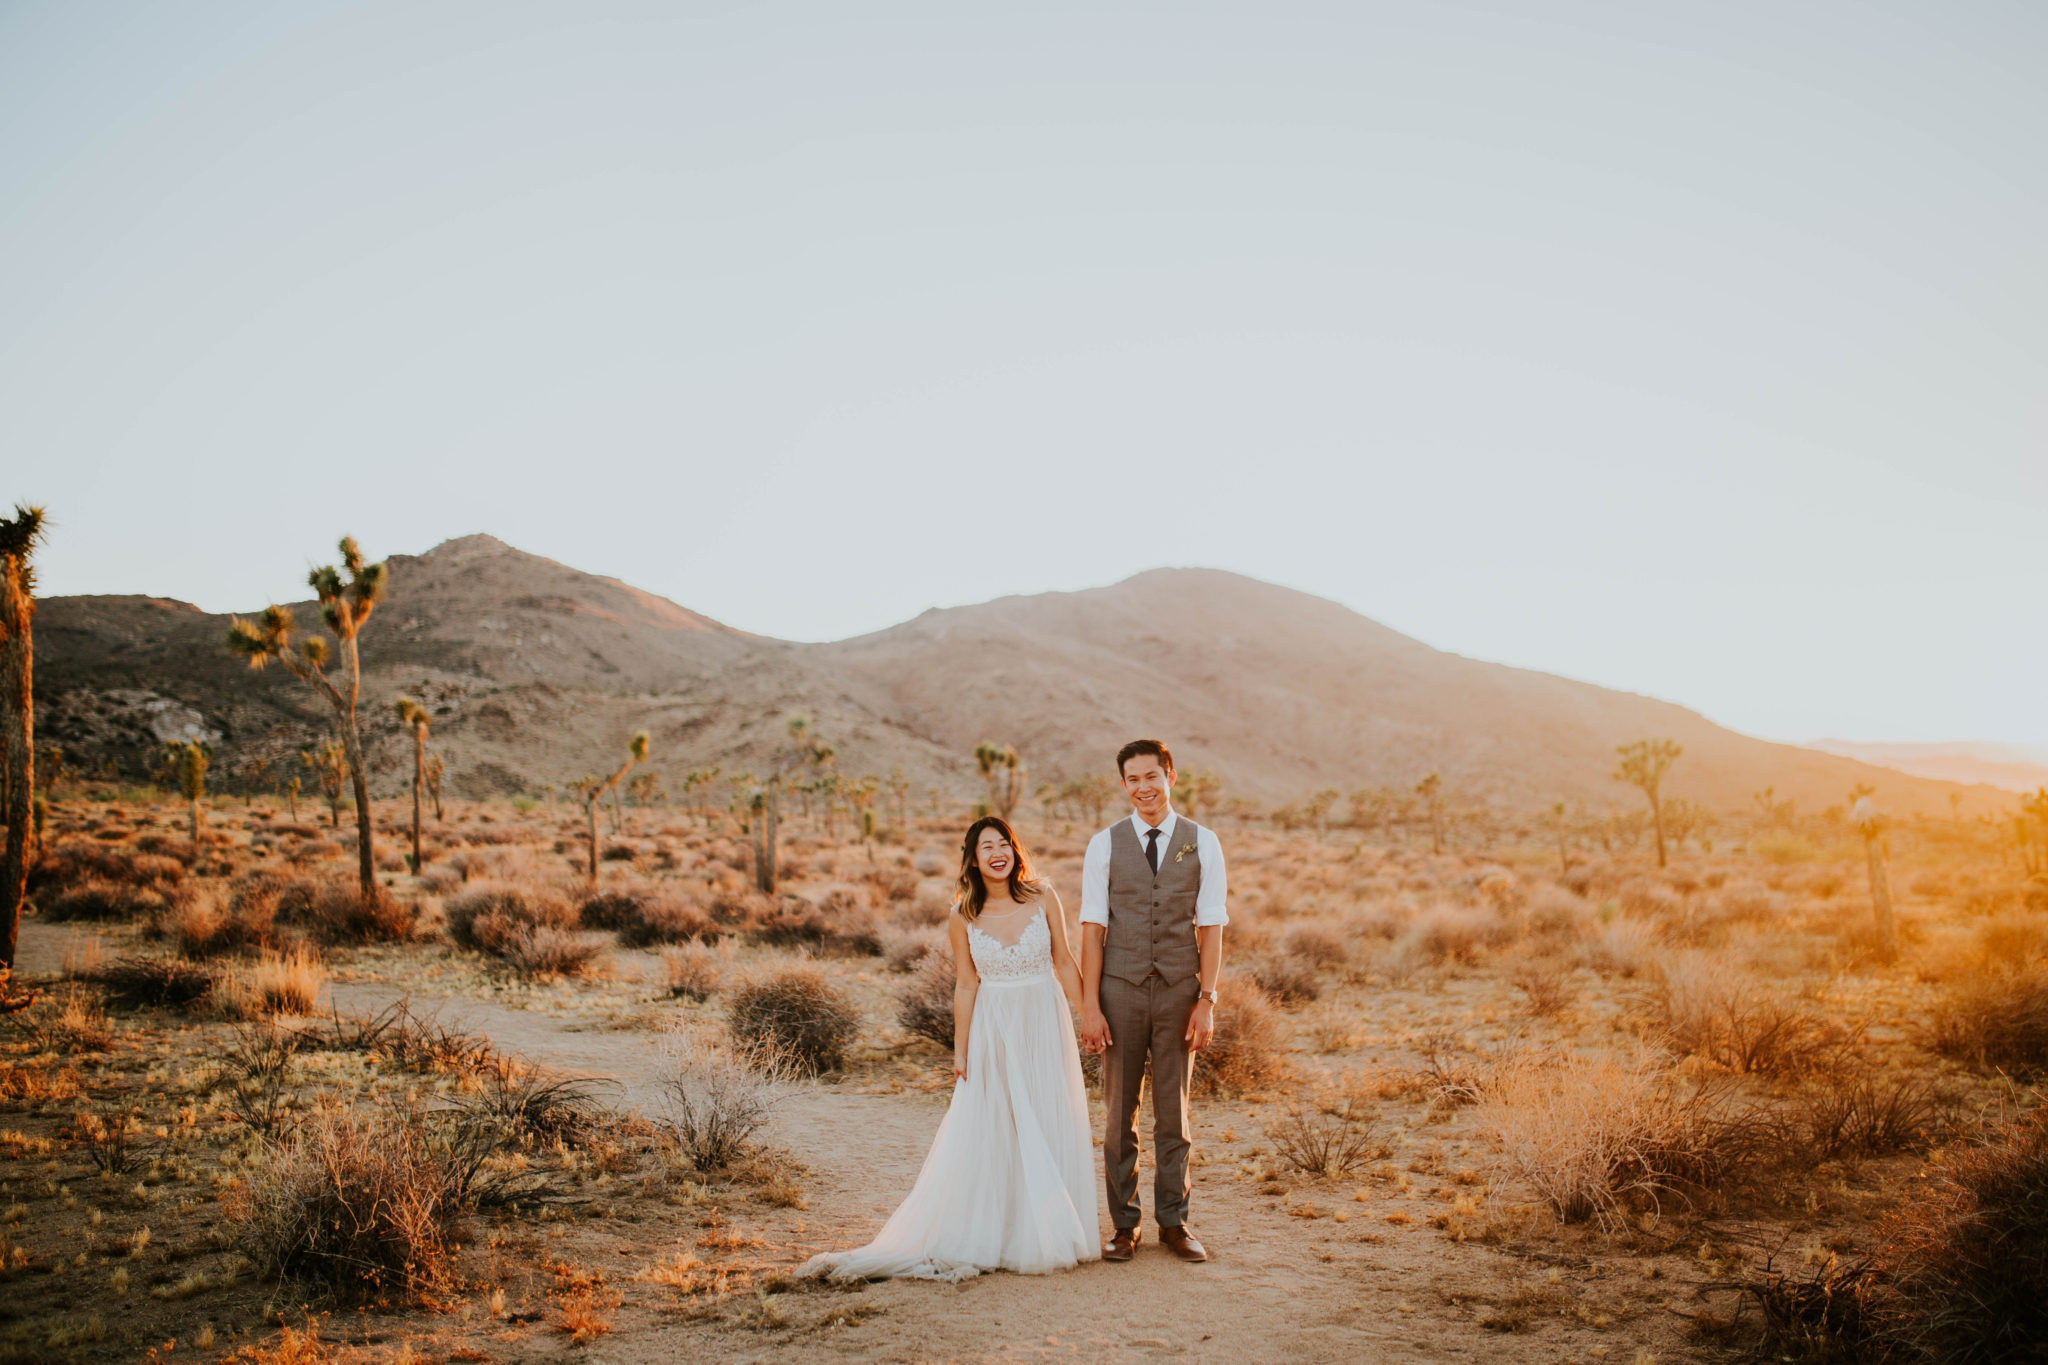 Mandy & Joey Joshua Tree Elopement California Wedding Photographer-264